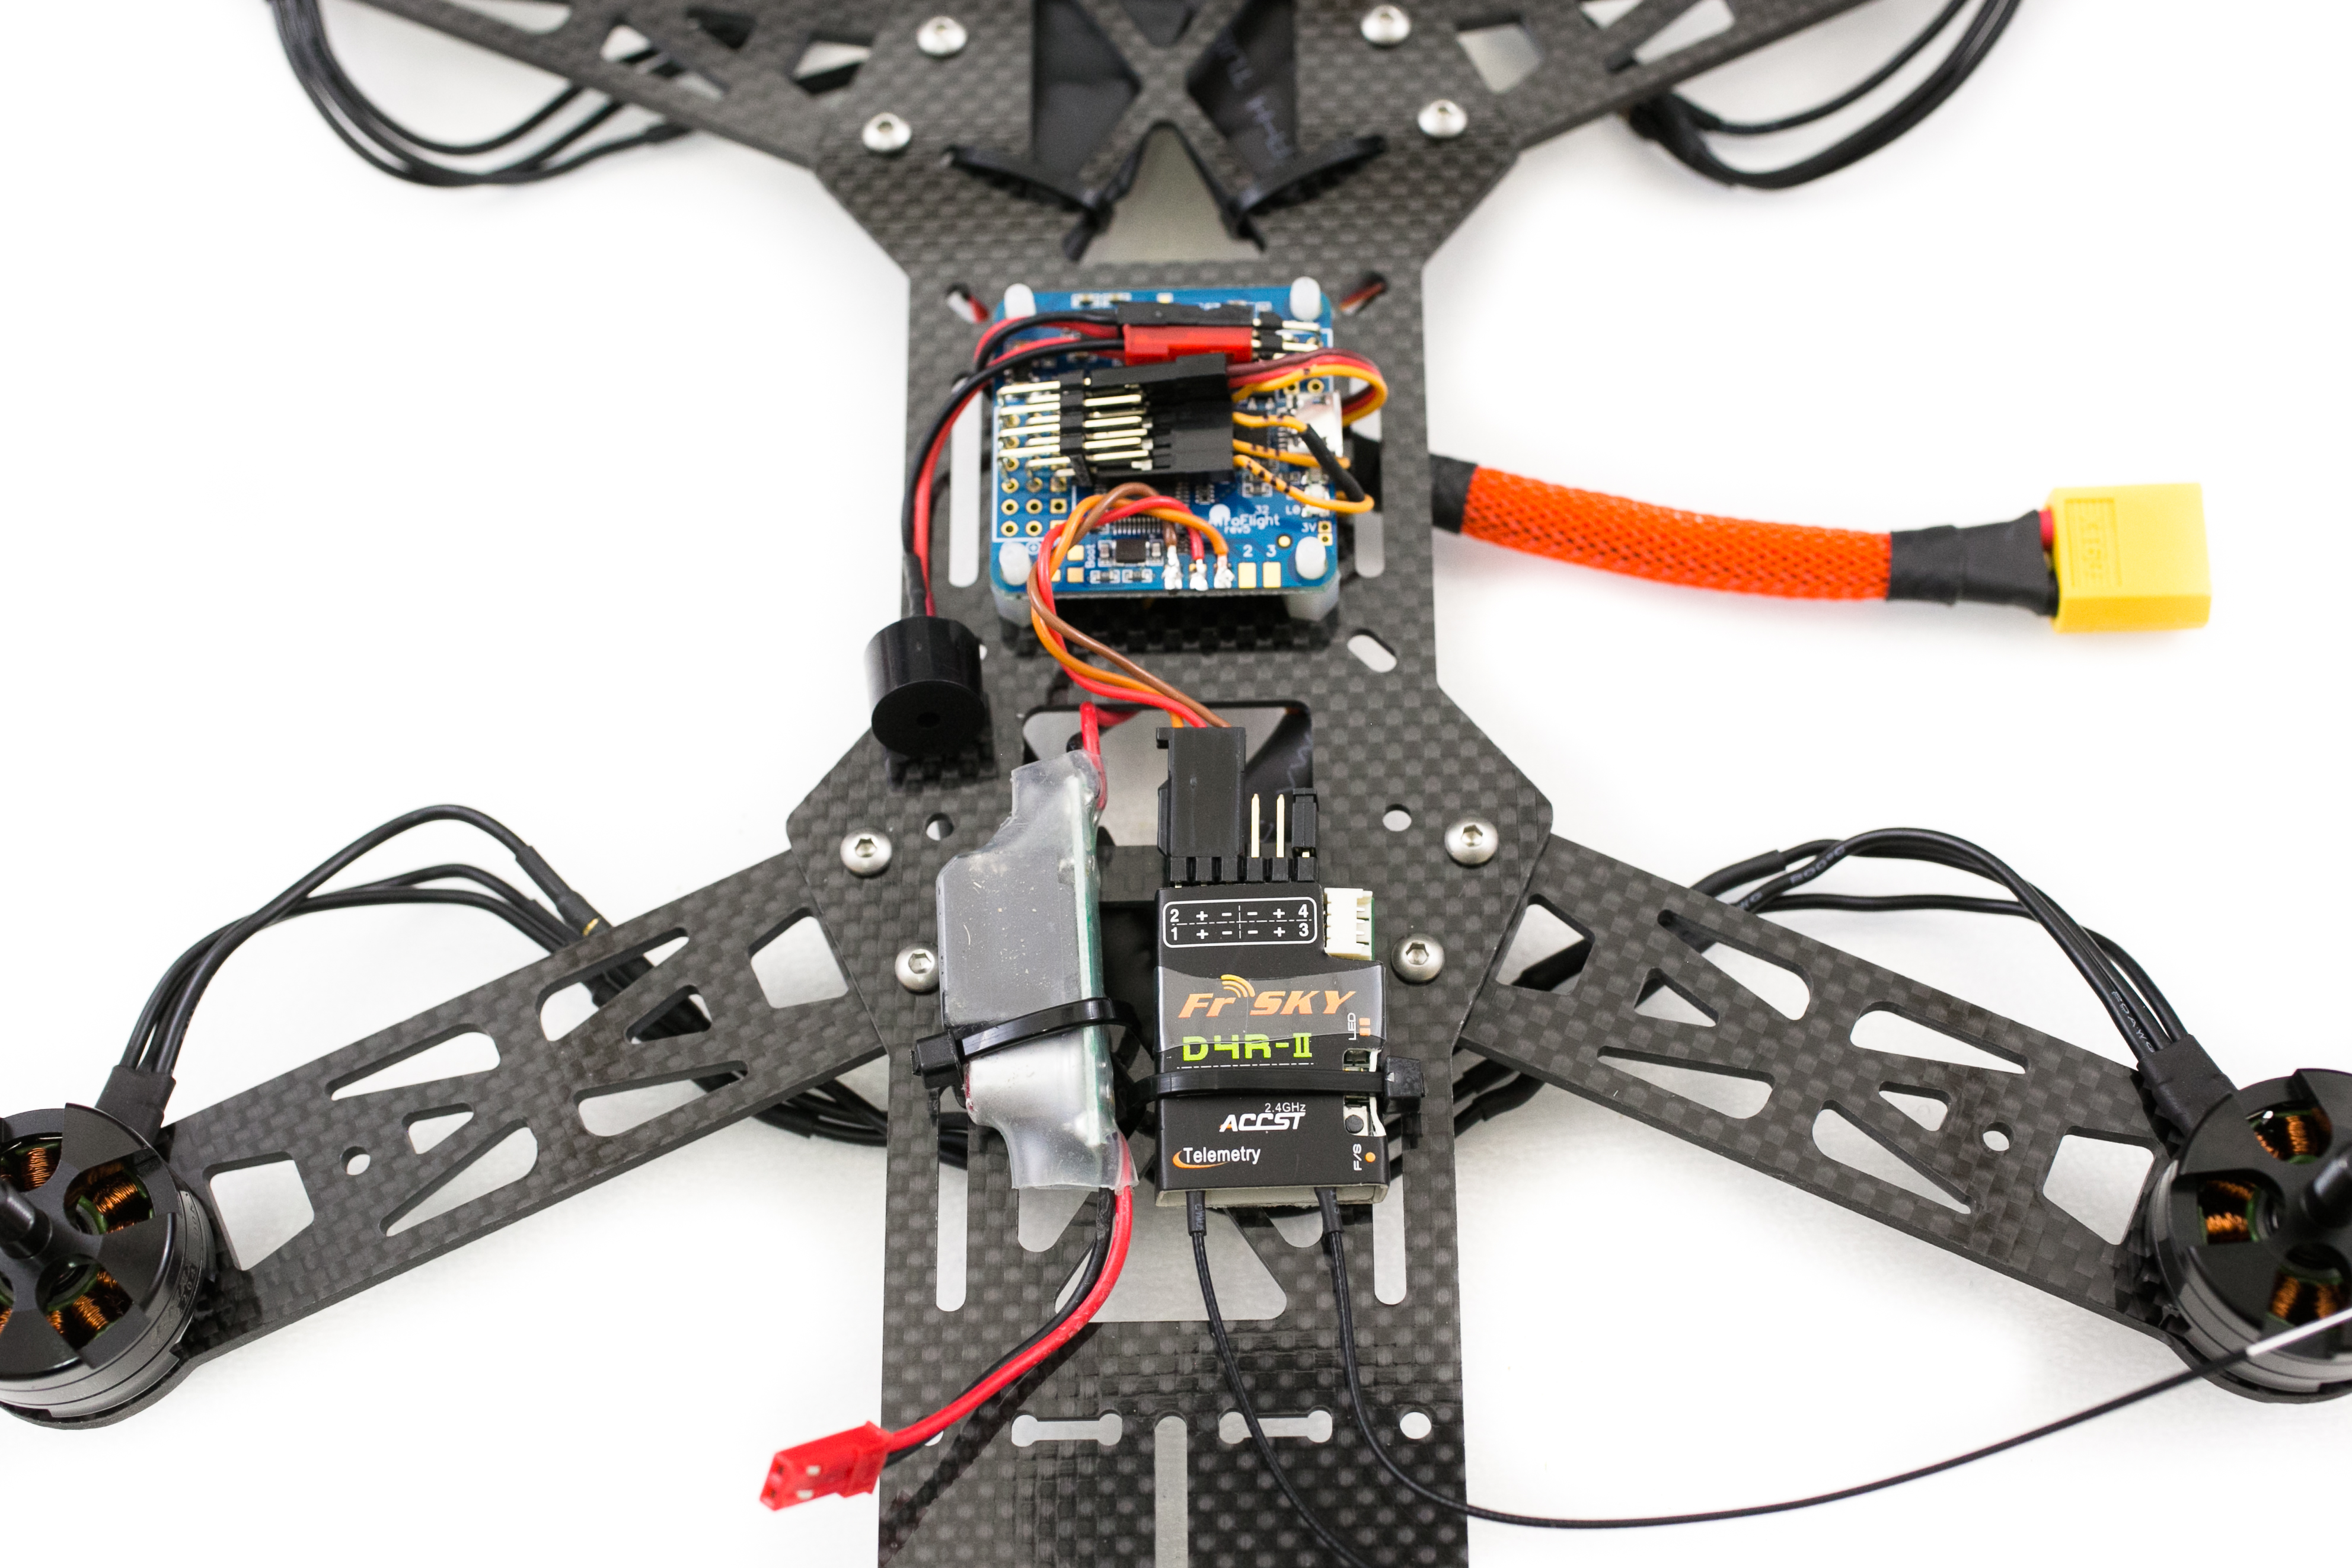 How to build an FPV Quadcopter Part 2 Nighthawk Pro Wiring Diagram on vestax pmc-580 pro, vestax pmc 37 pro, sennheiser pro,